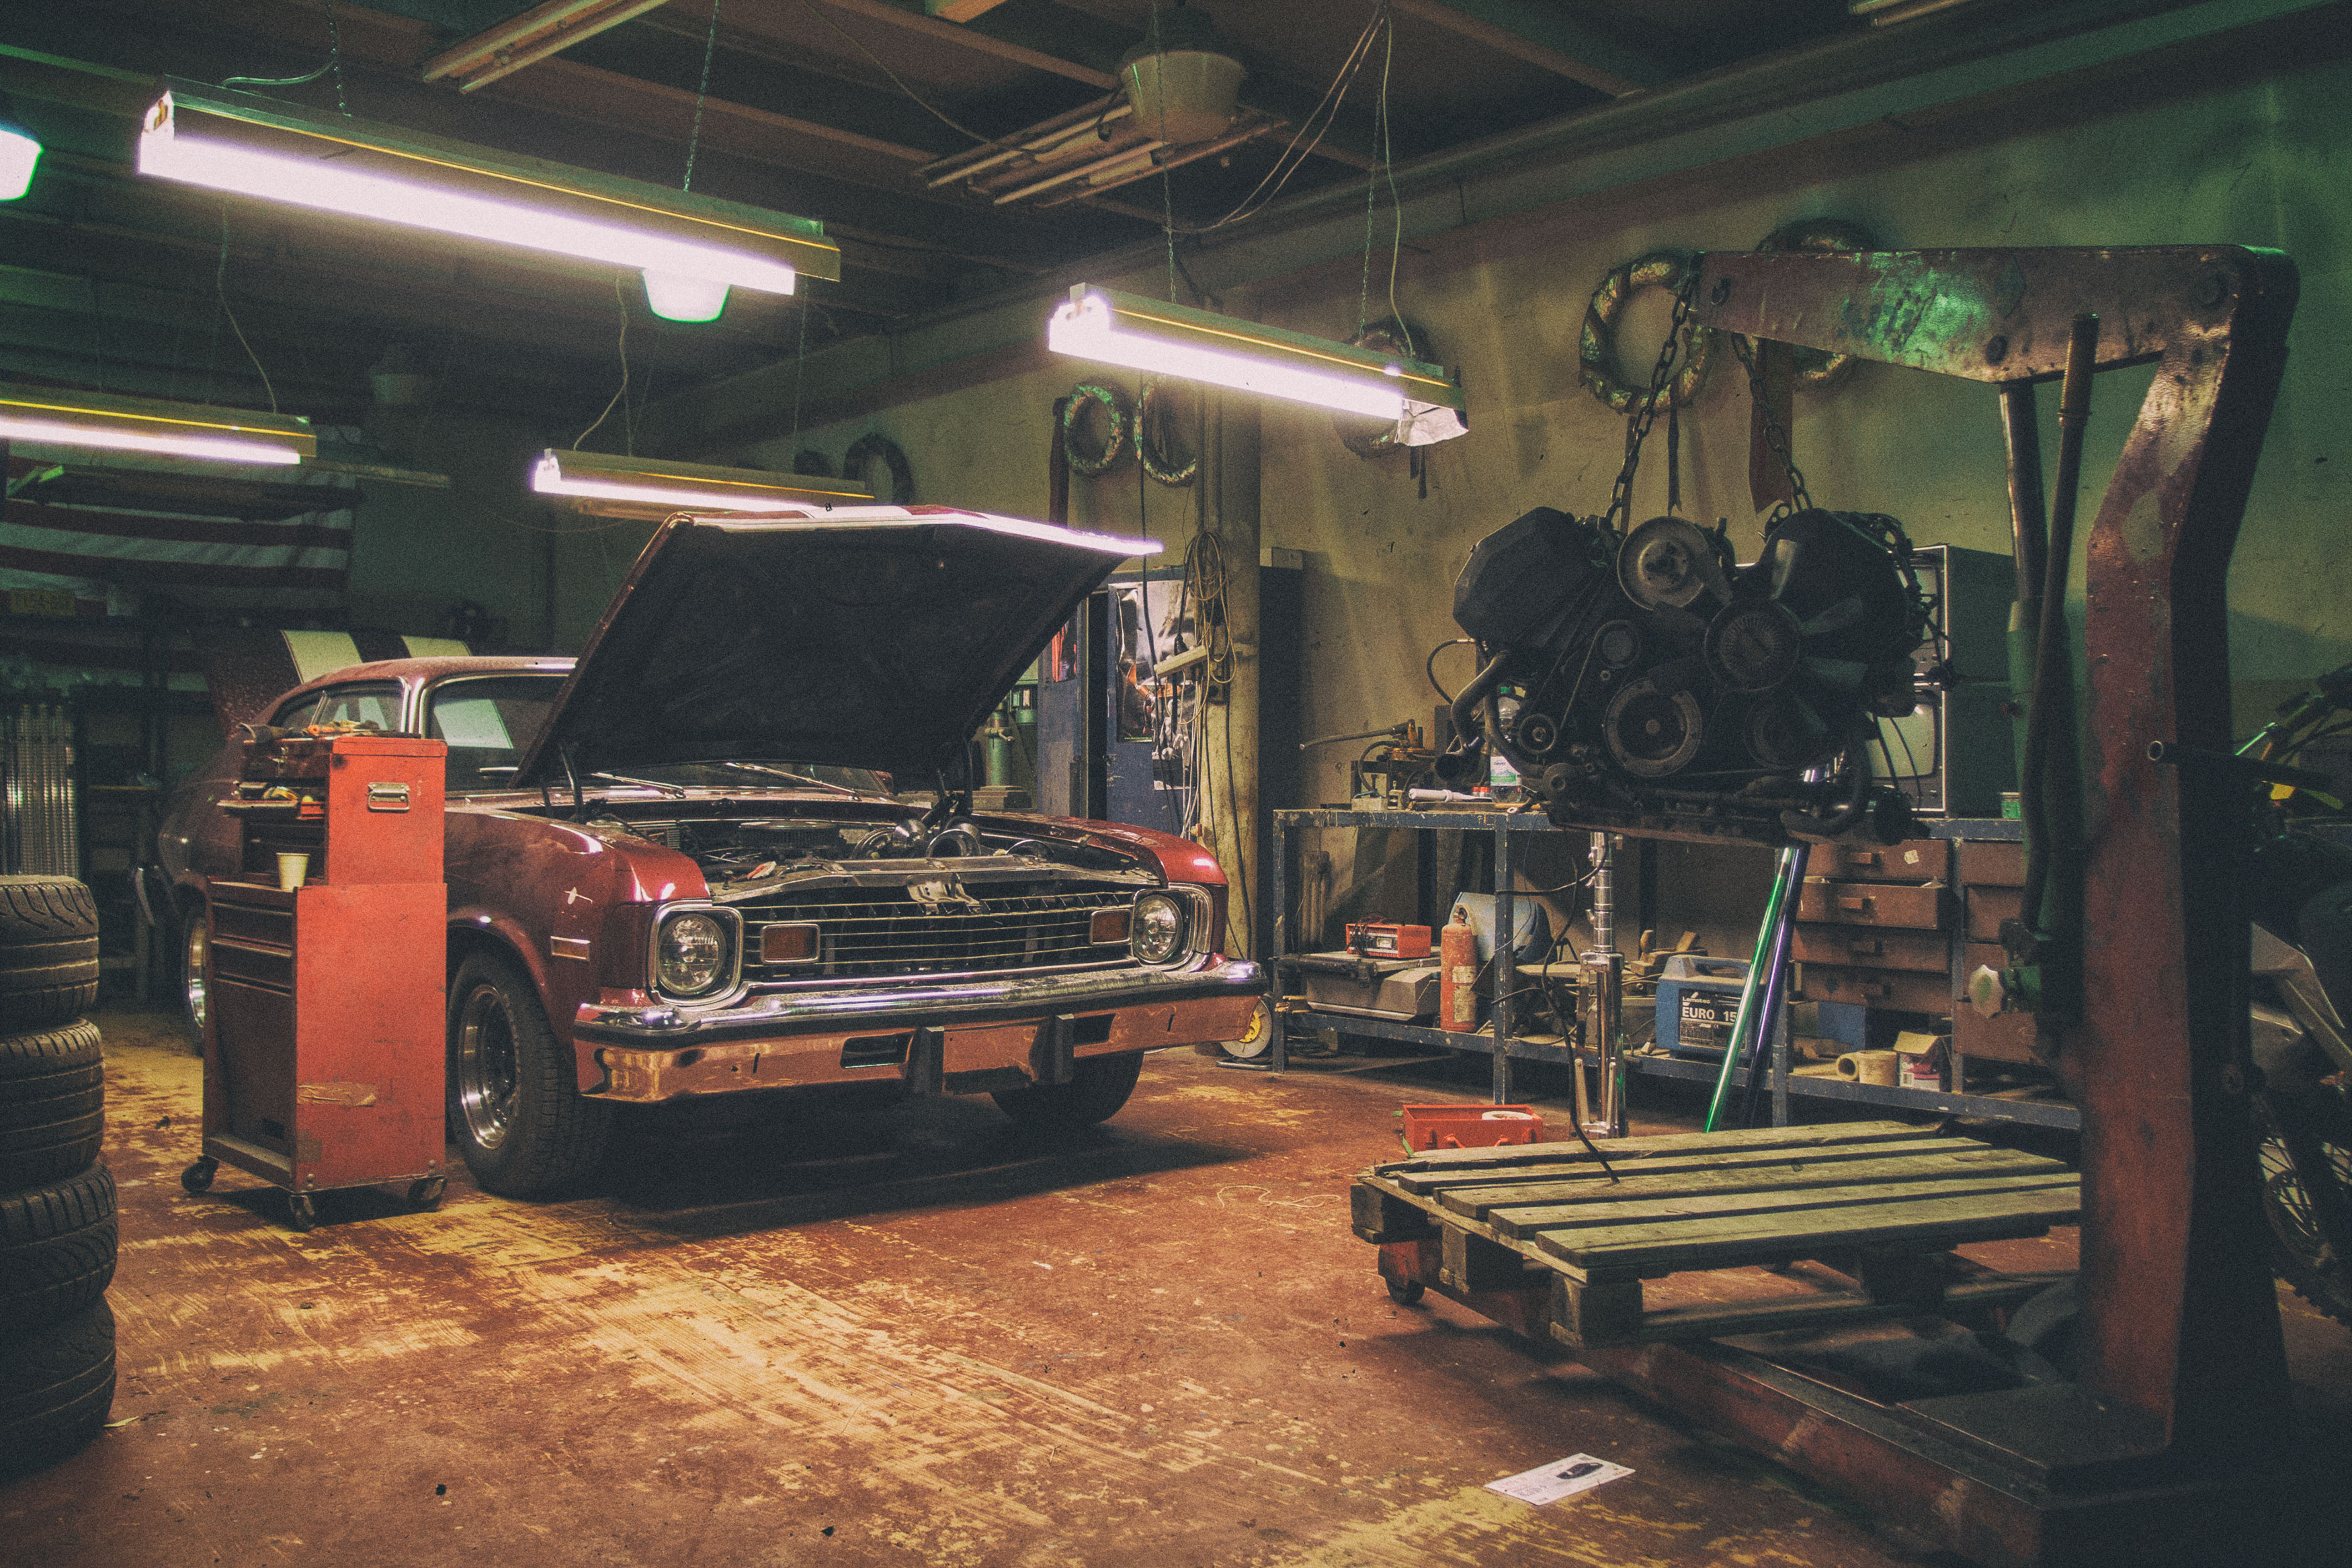 Car Repair Shop Free Stock Photos Libreshot